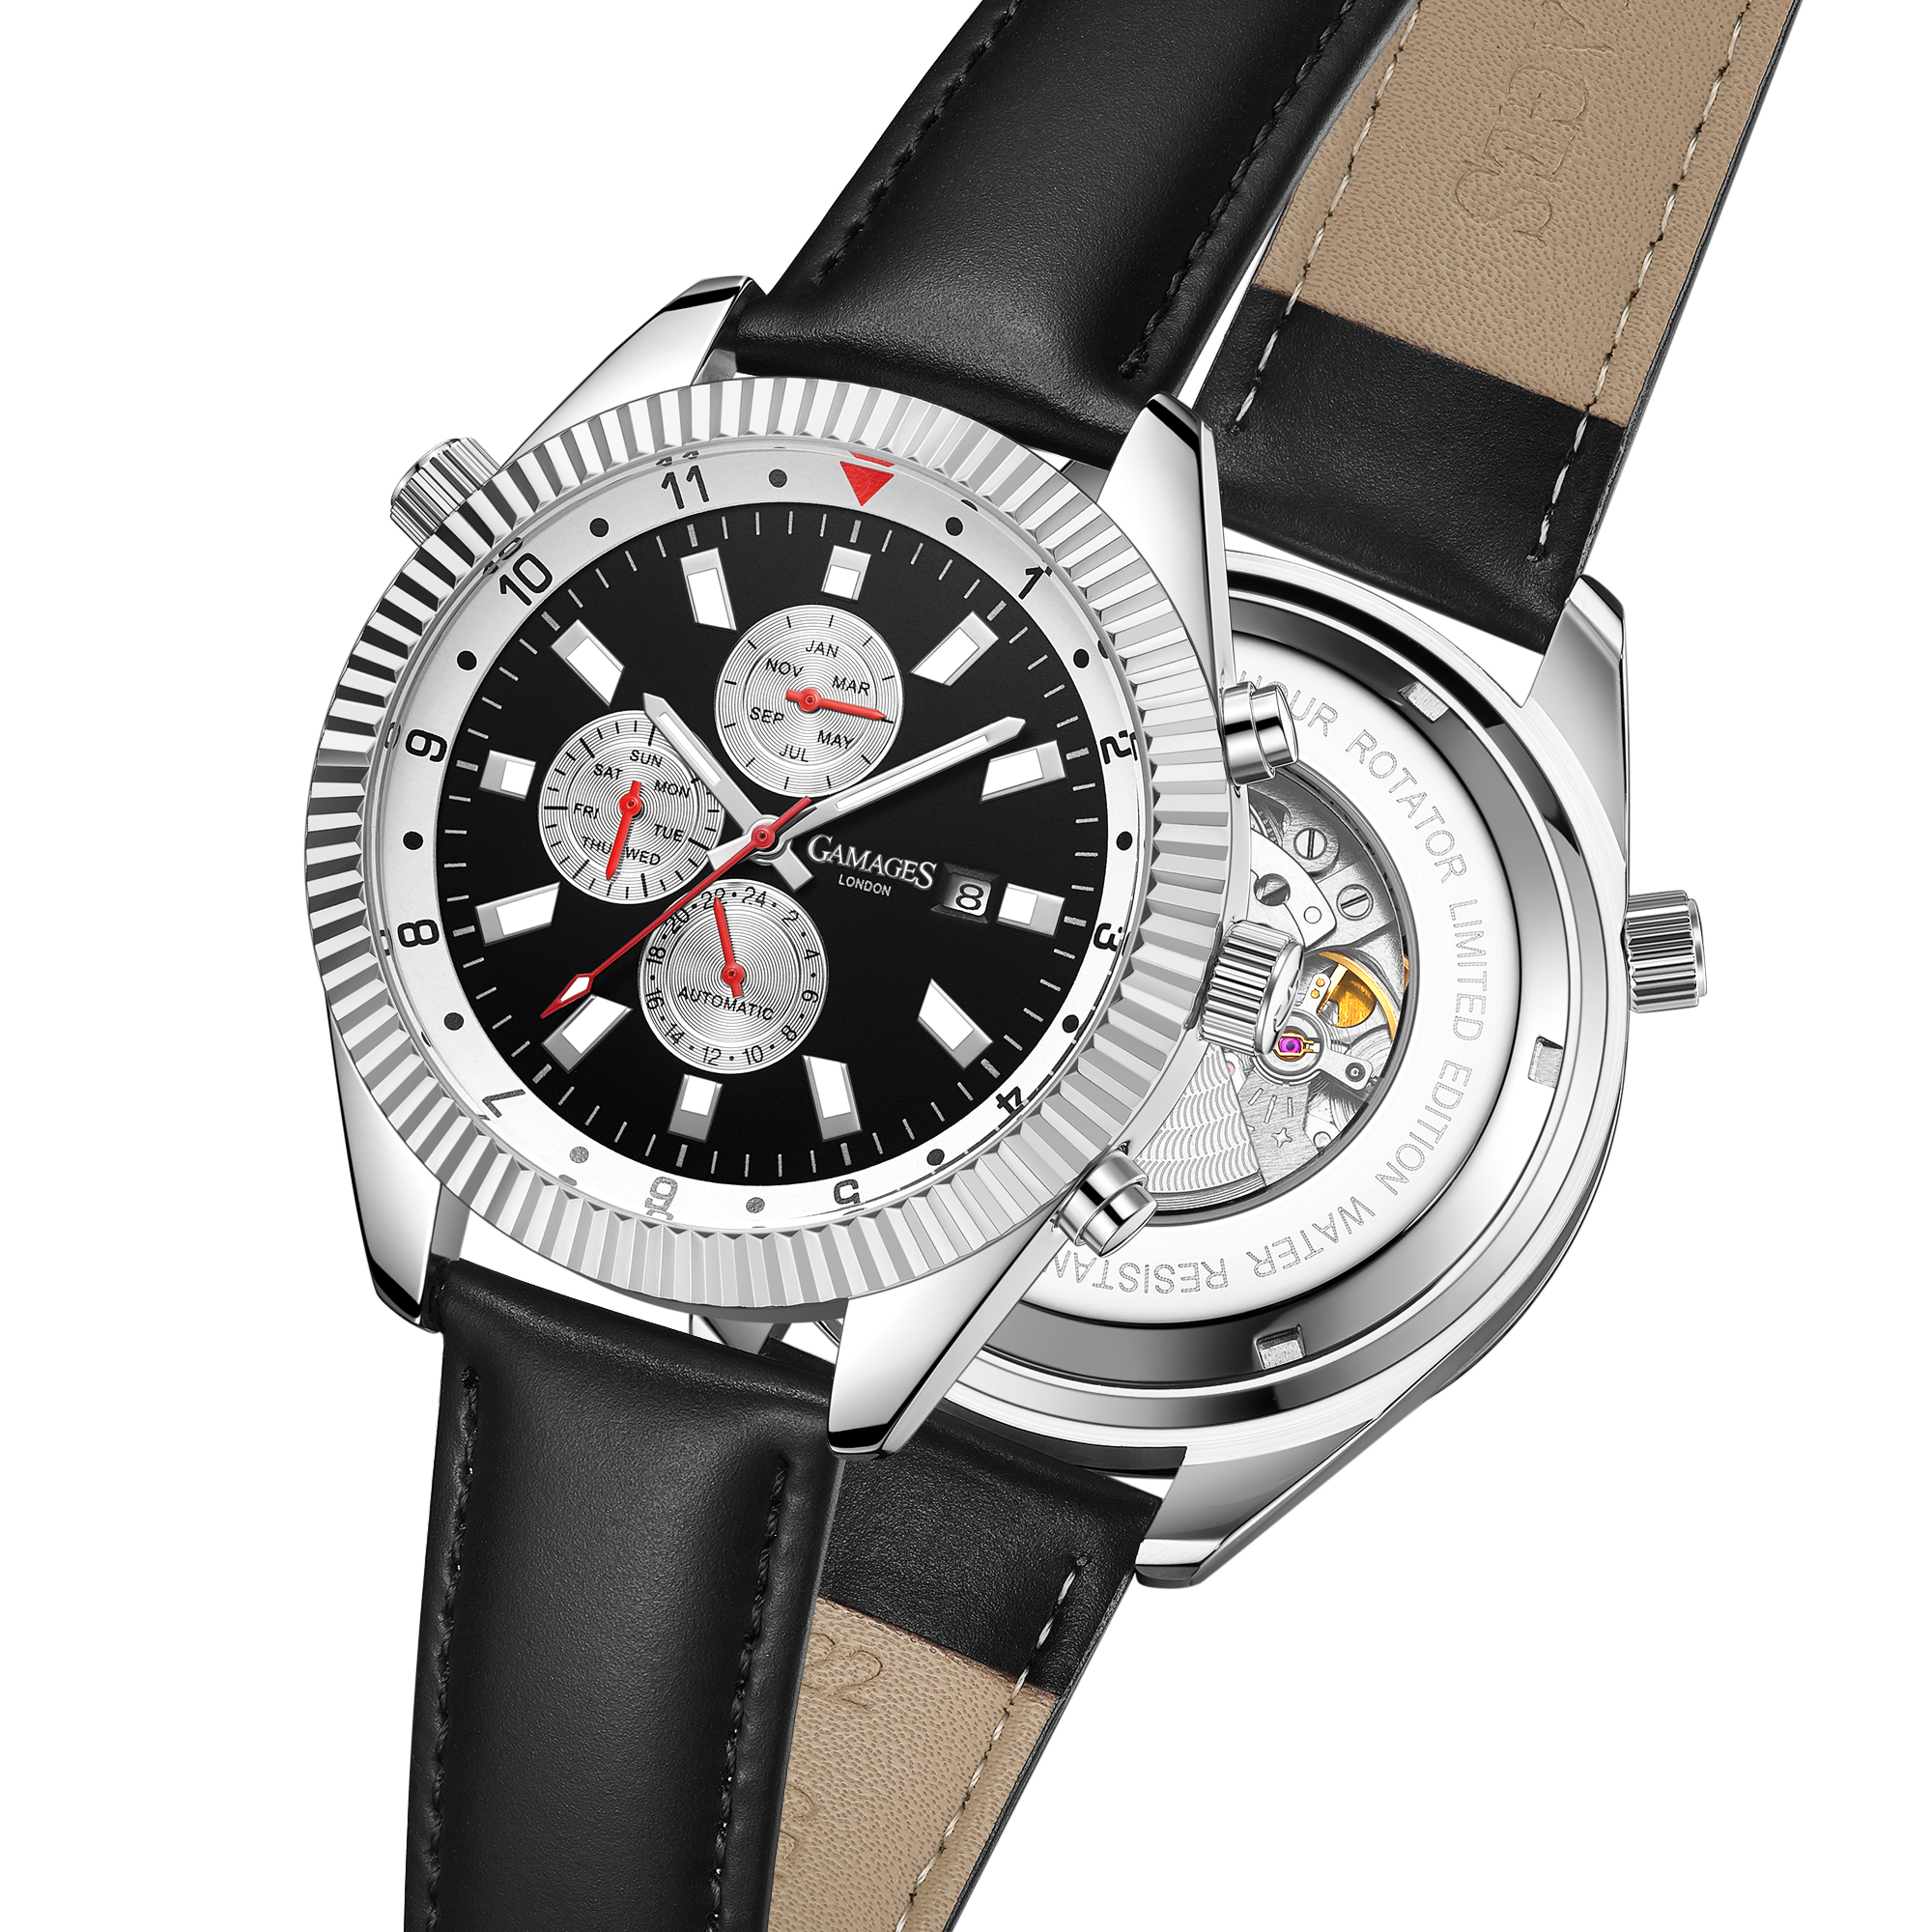 Ltd Edition Hand Assembled GAMAGES Hour Rotator Automatic Steel – 5 Year Warranty & Free Delivery - Image 3 of 5